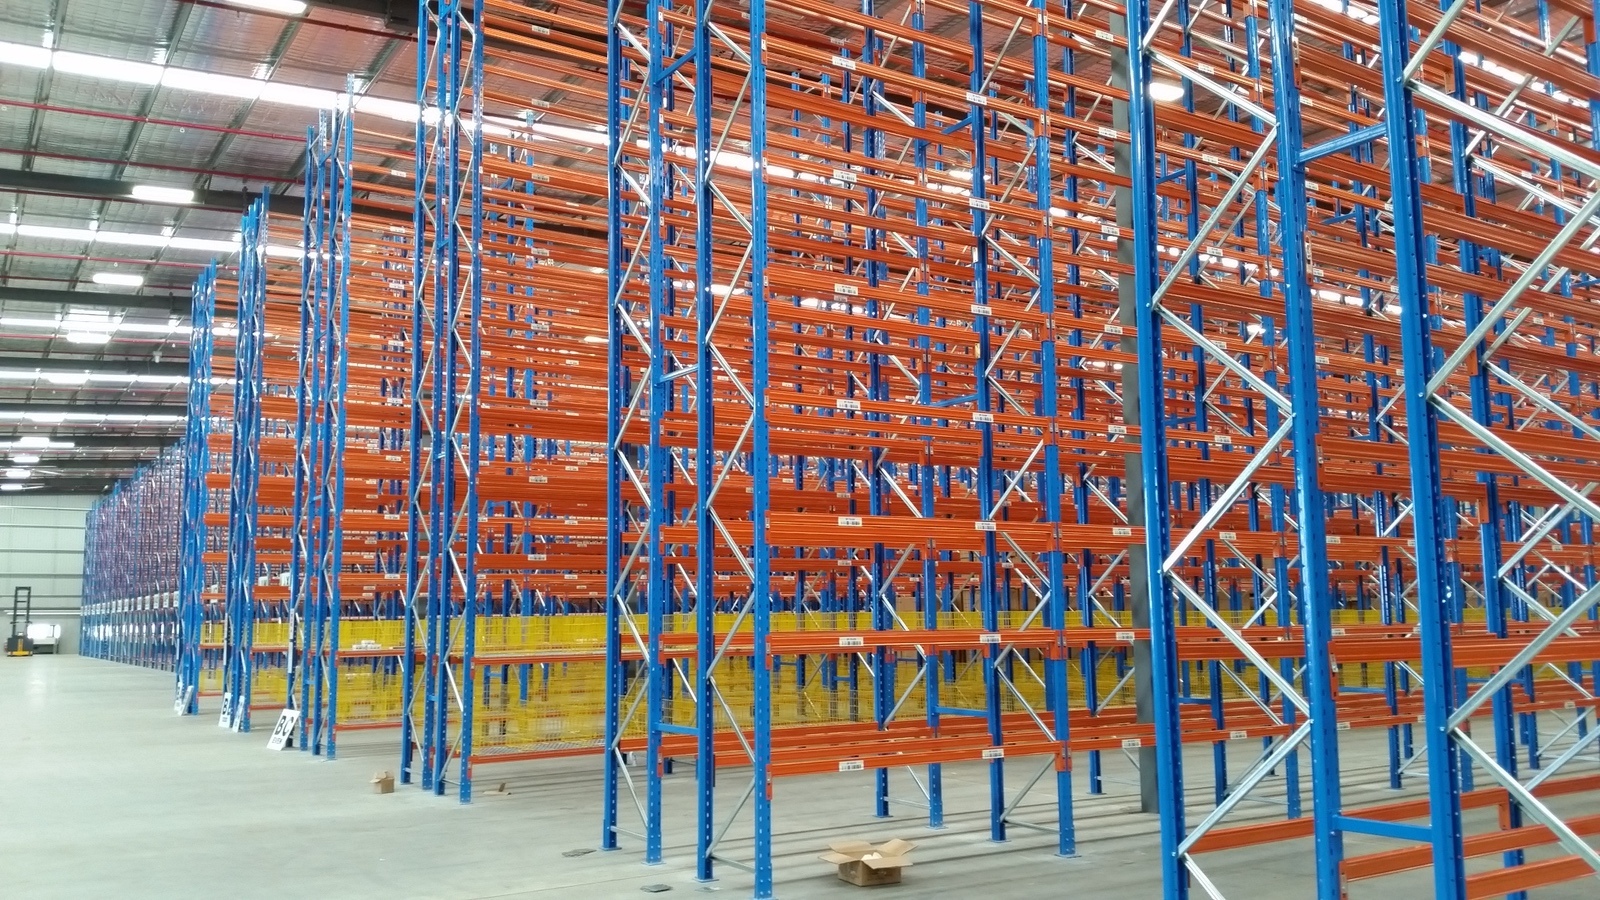 View of pallet racking system being installed